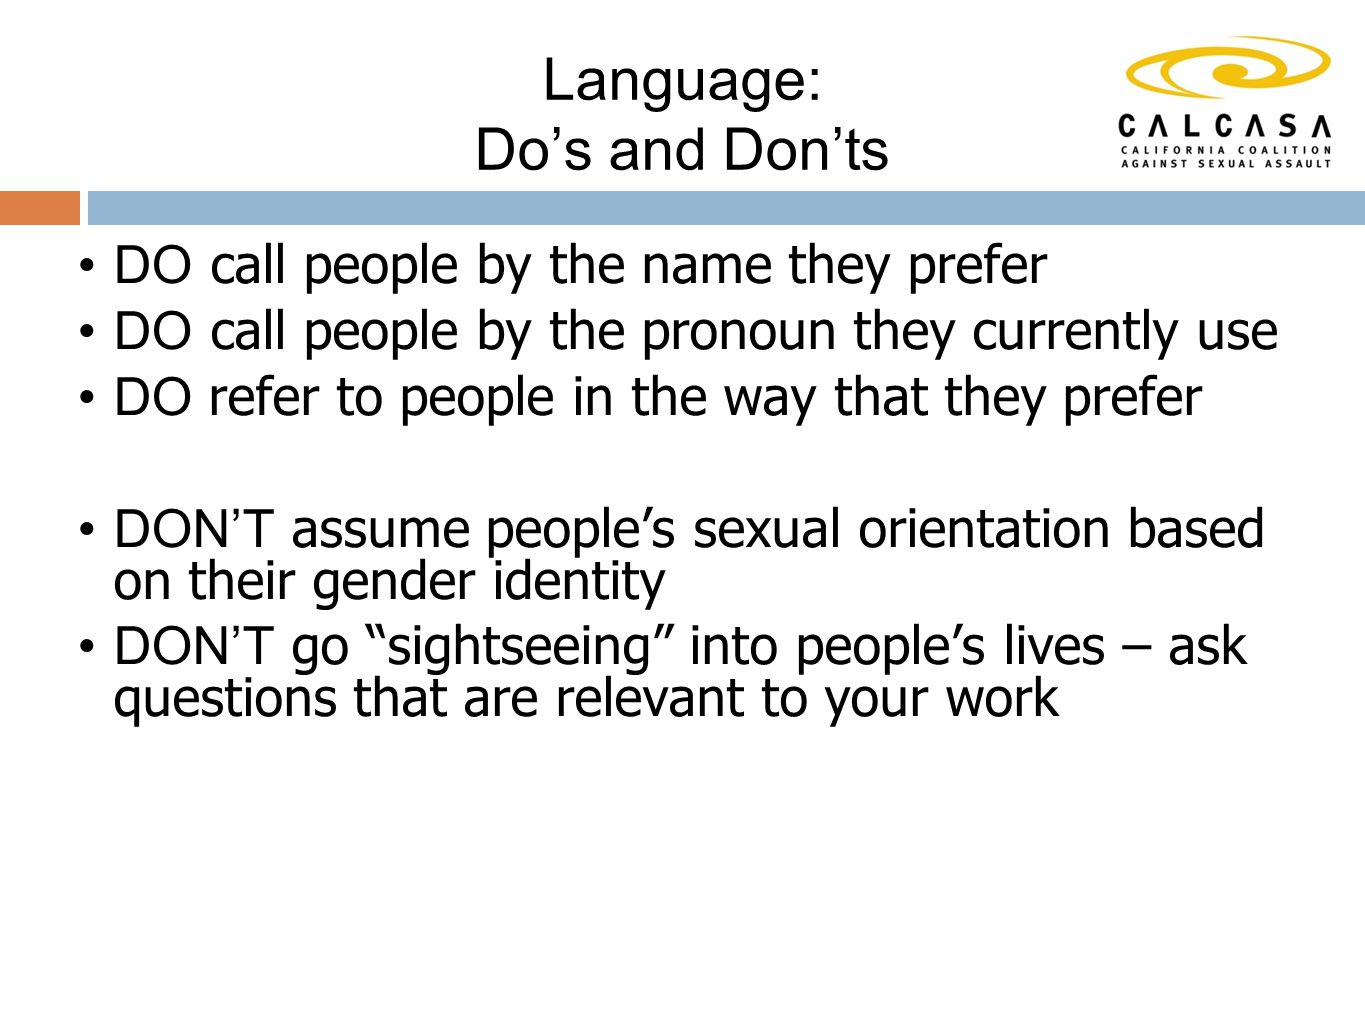 DO call people by the name they prefer DO call people by the pronoun they currently use DO refer to people in the way that they prefer DON'T assume people's sexual orientation based on their gender identity DON'T go sightseeing into people's lives – ask questions that are relevant to your work Language: Do's and Don'ts